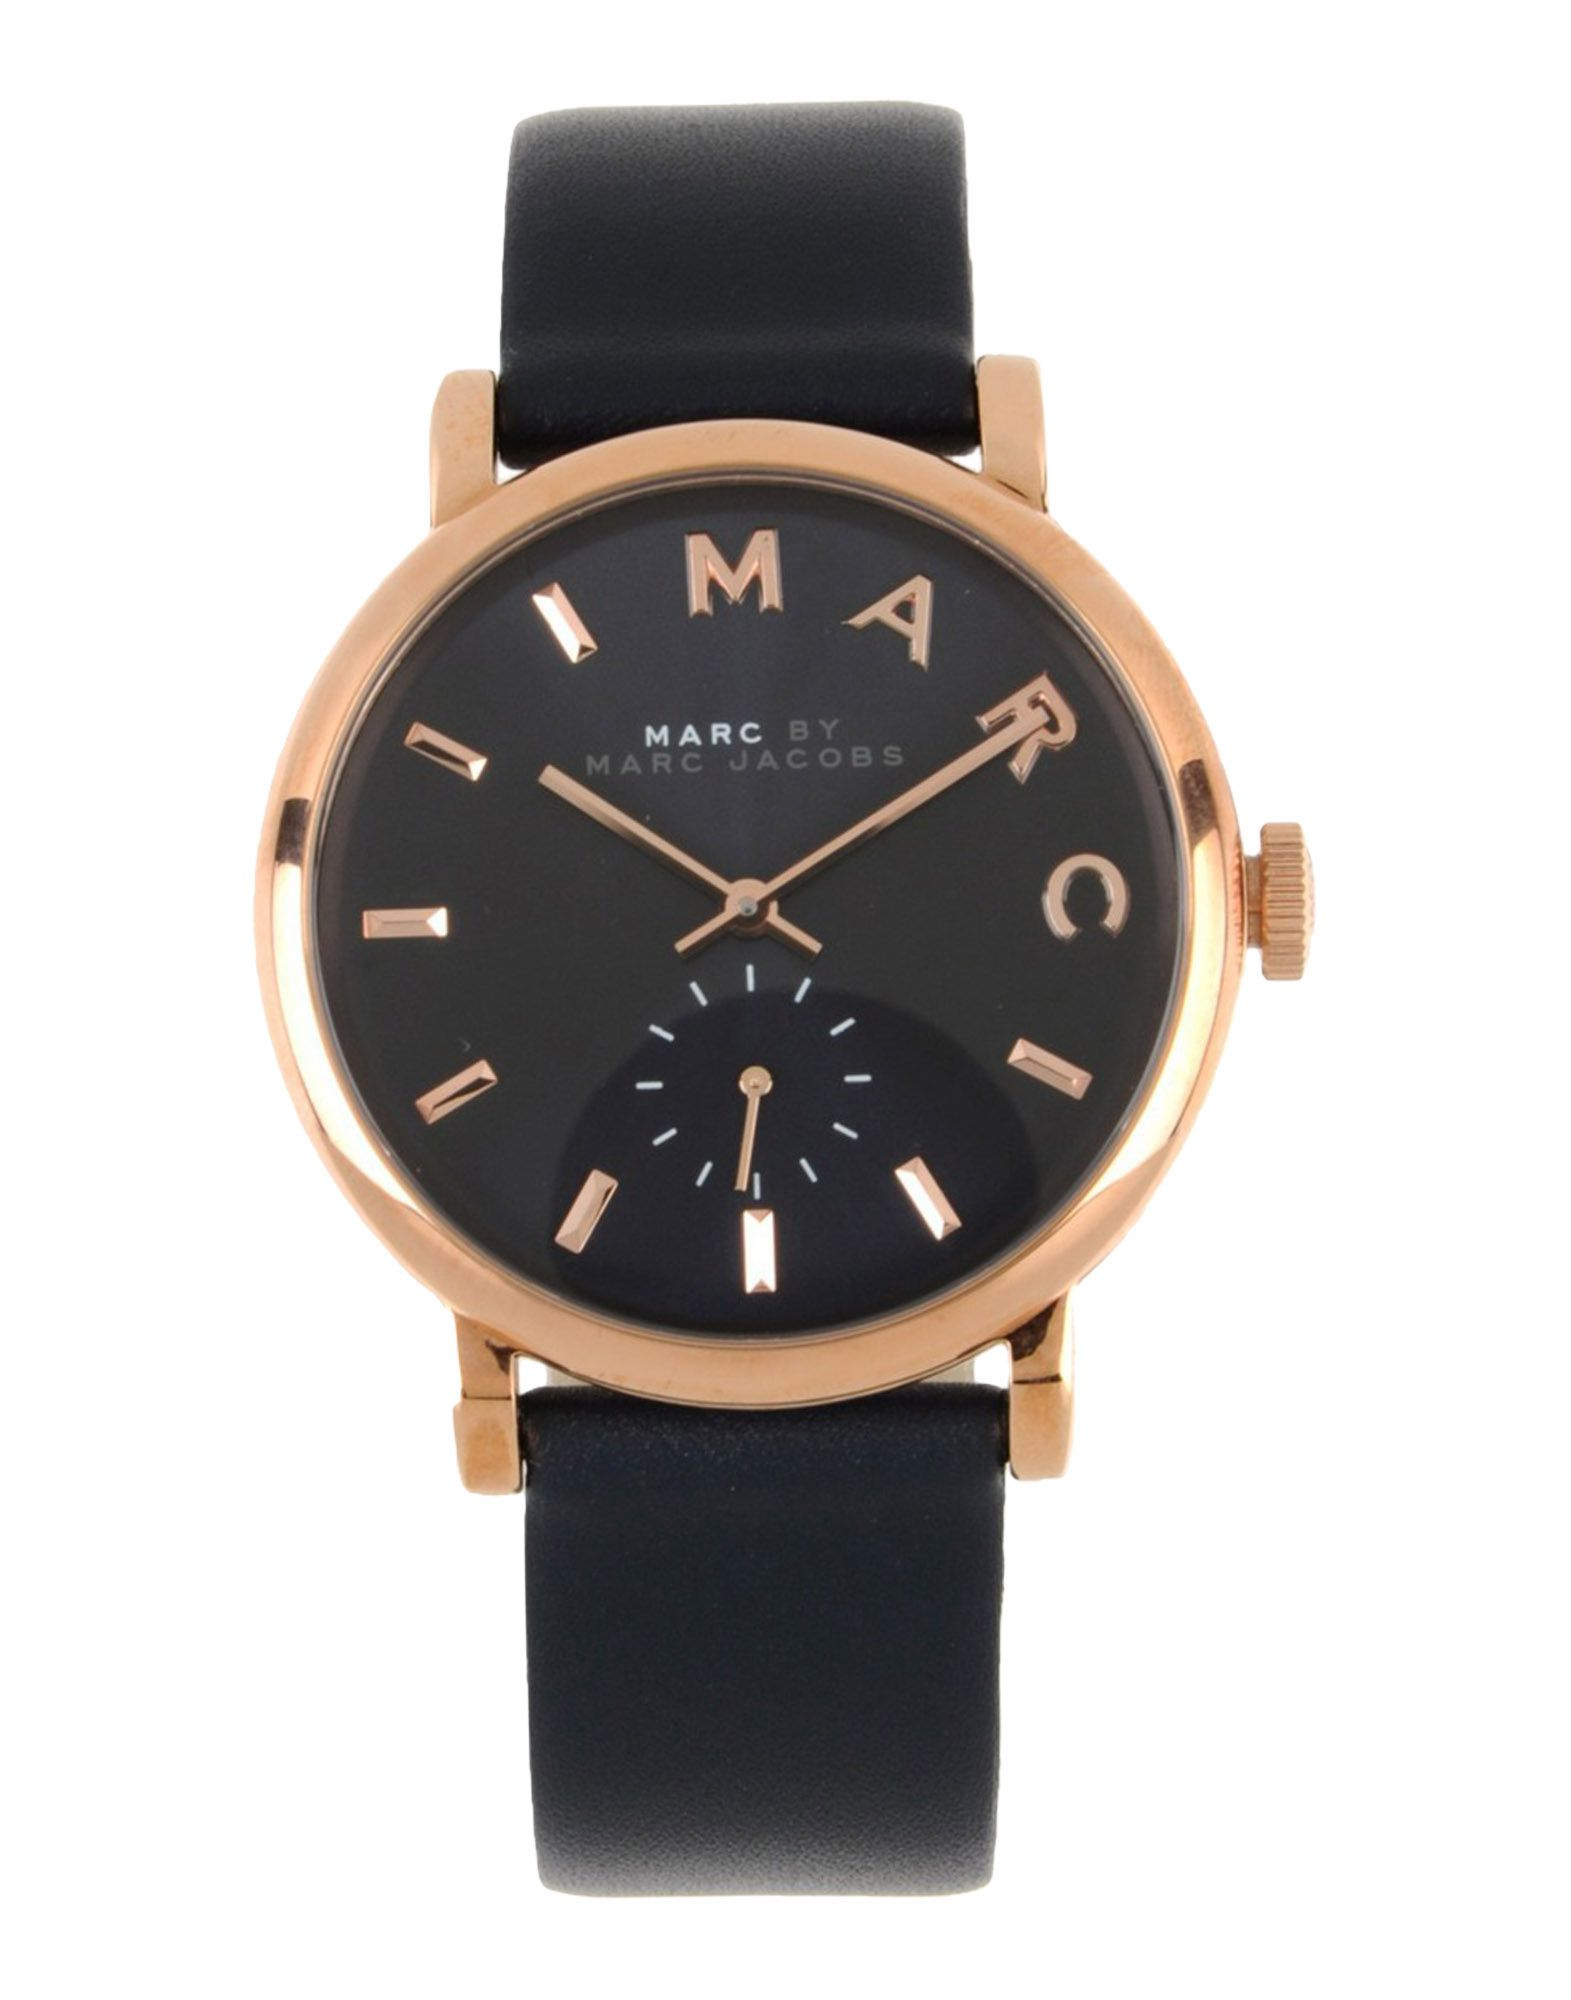 marc by marc jacobs wrist watch in blue dark blue lyst. Black Bedroom Furniture Sets. Home Design Ideas